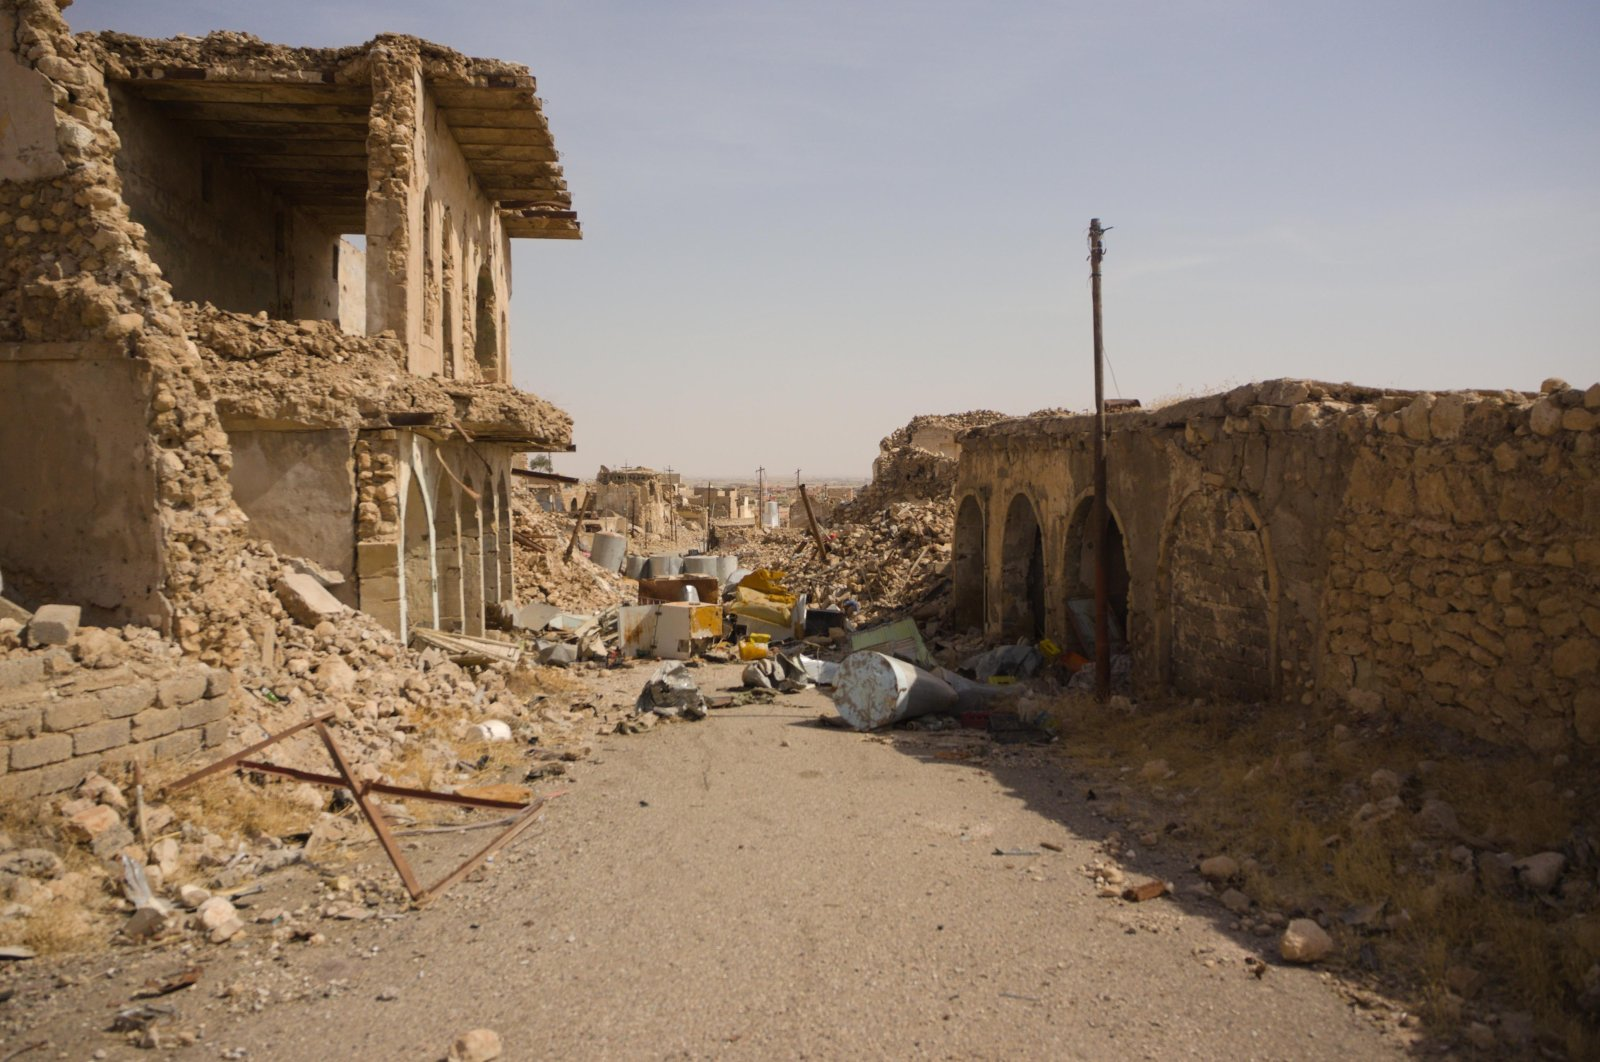 Streets destroyed in the fight against Daesh in northern Iraq's Sinjar are seen, Oct. 23, 2018. (Photo by Shutterstock)